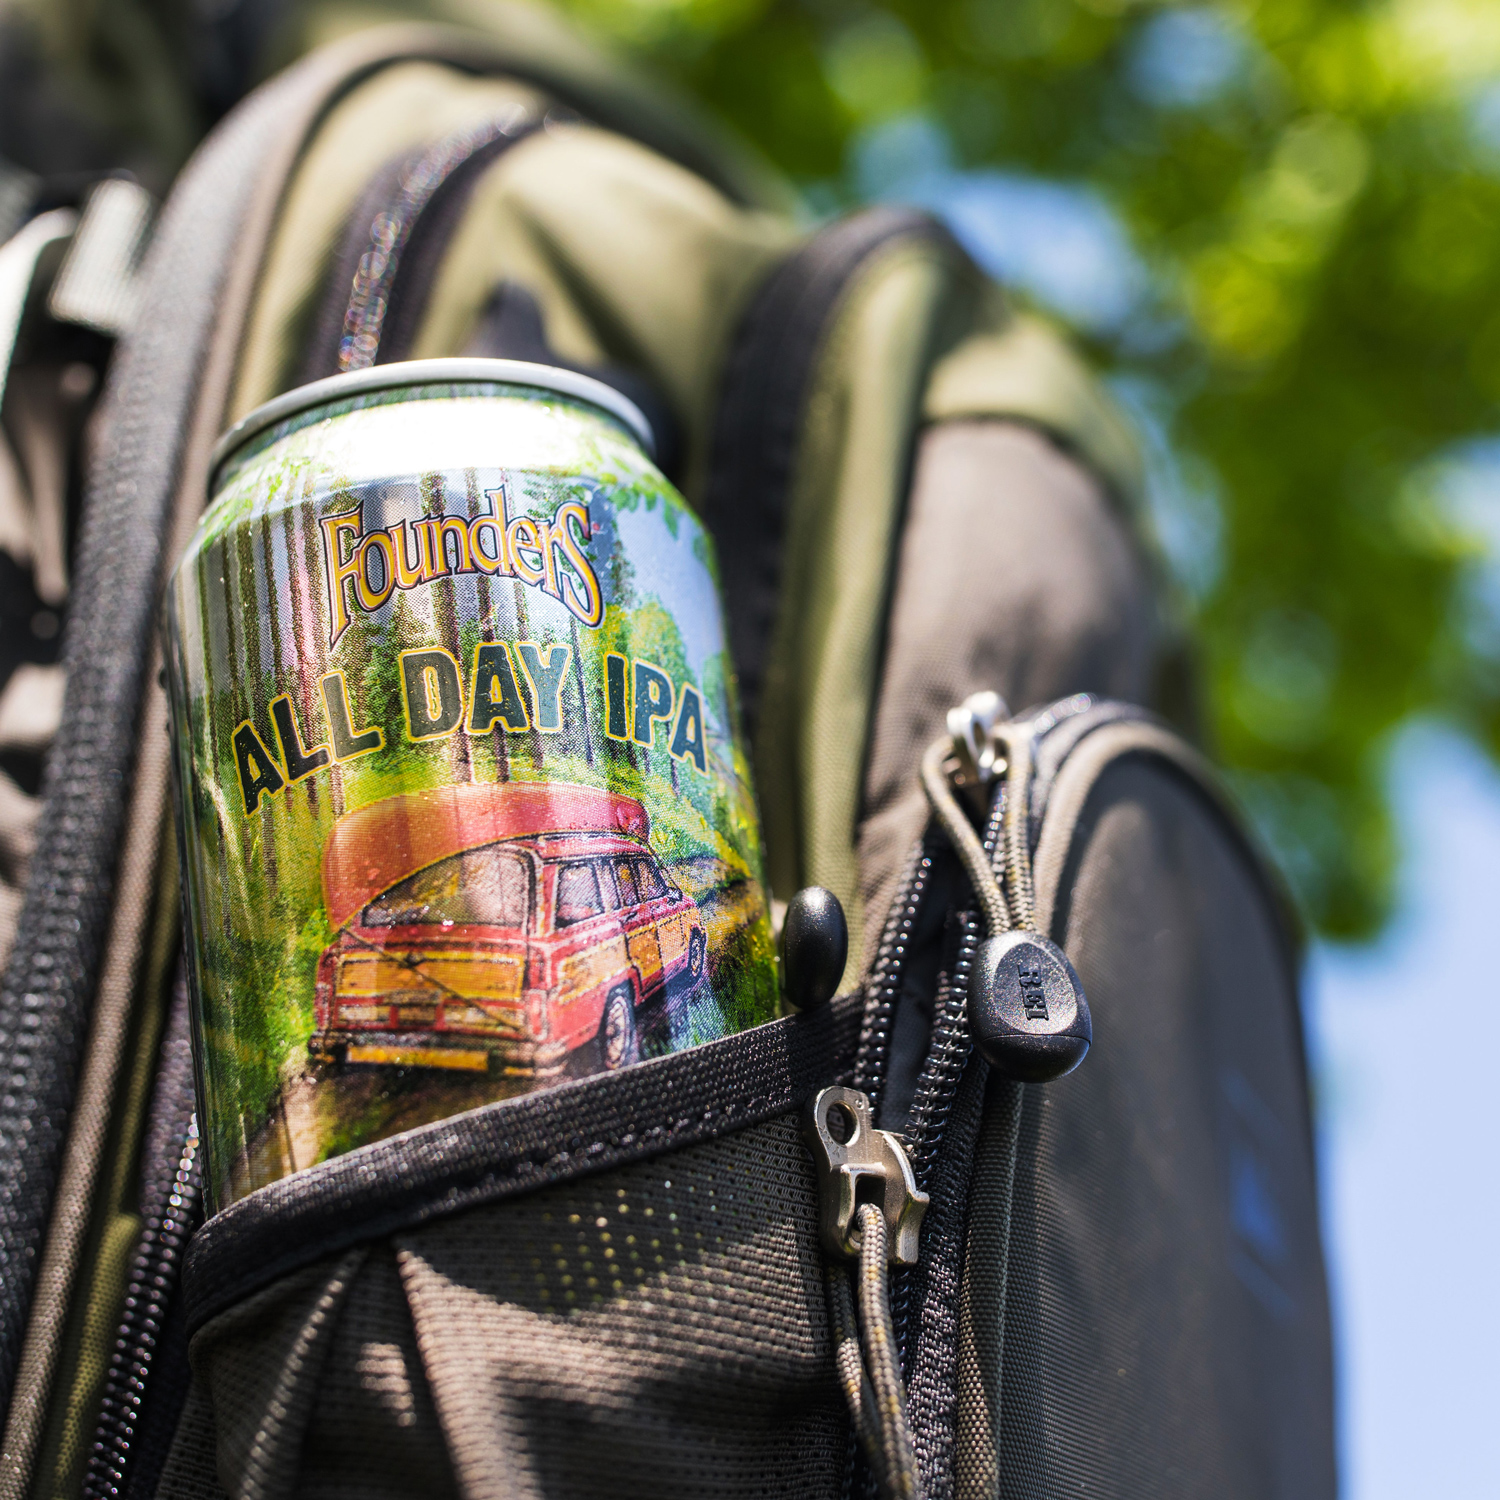 Can of Founders All Day IPA in backpack